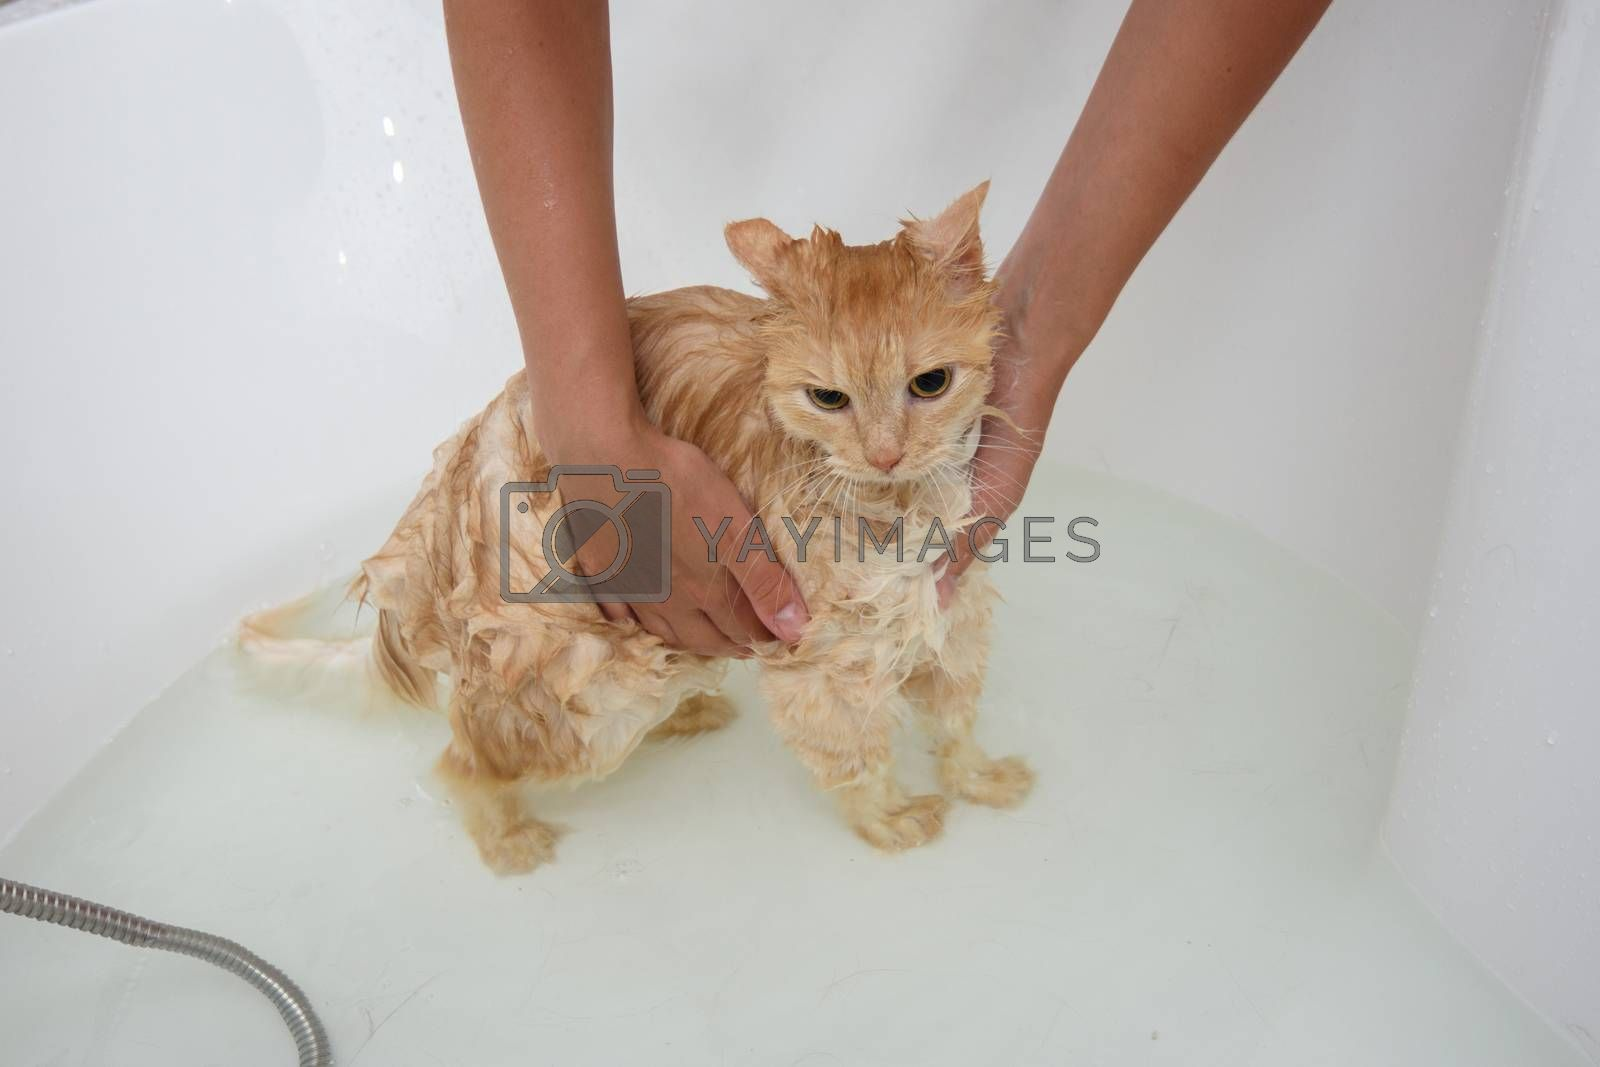 The cat that is bathed in the bathroom does not like water